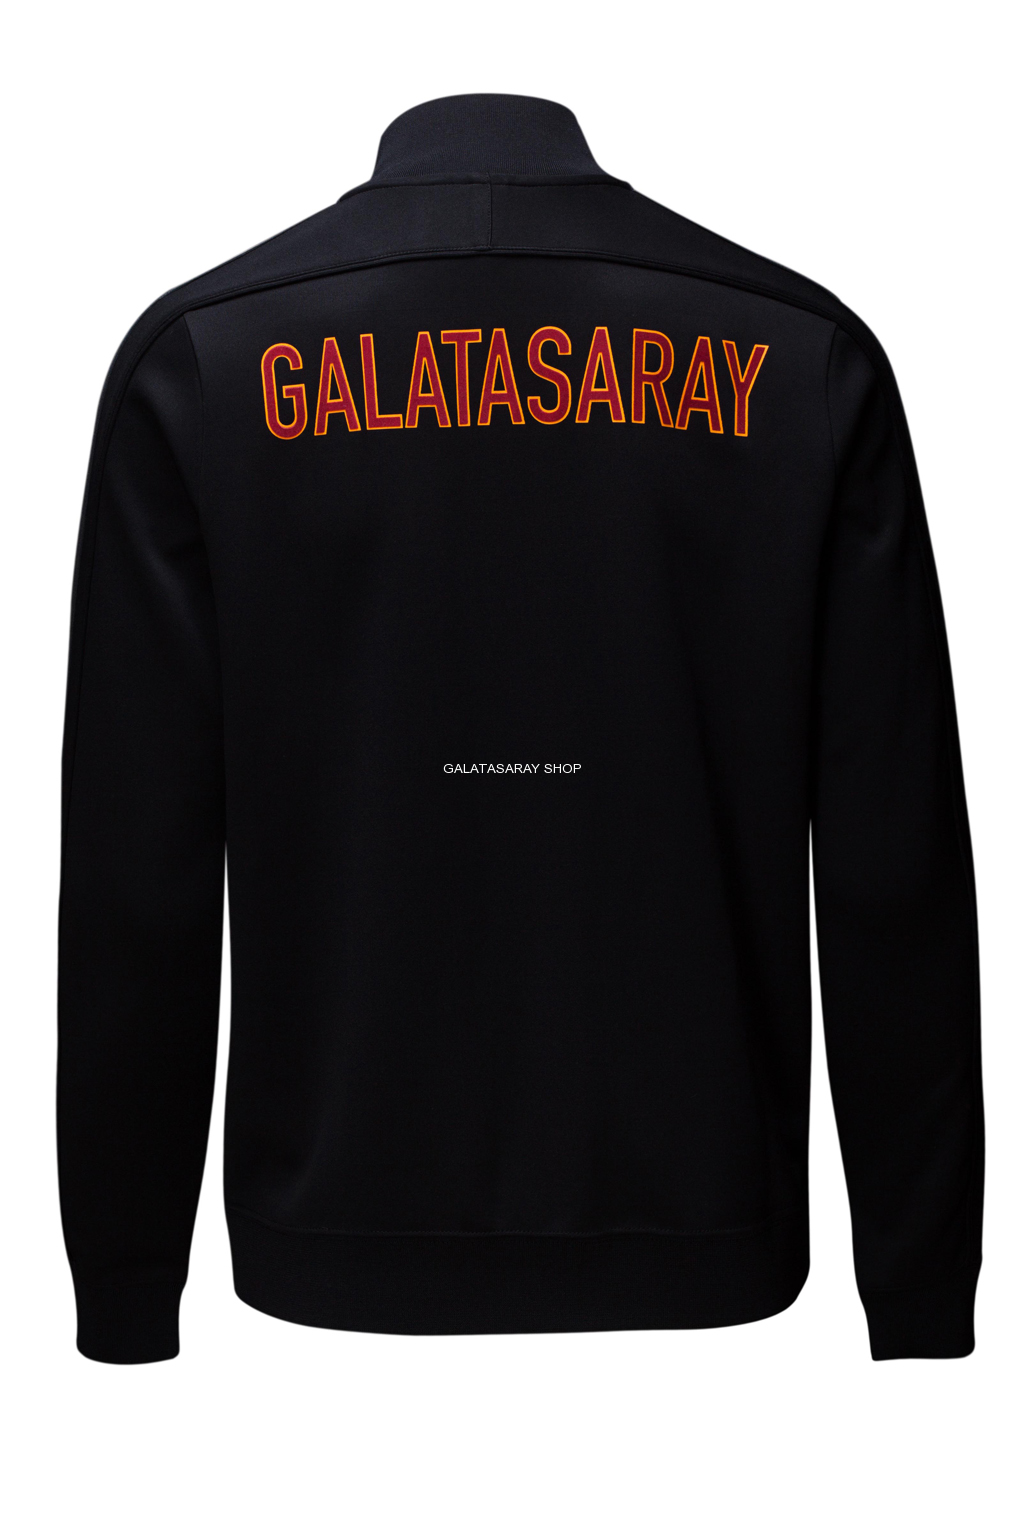 Galatasaray Red Authentic N98 Jacket 13/14 from Nike at Galatasaray Shop # 546920